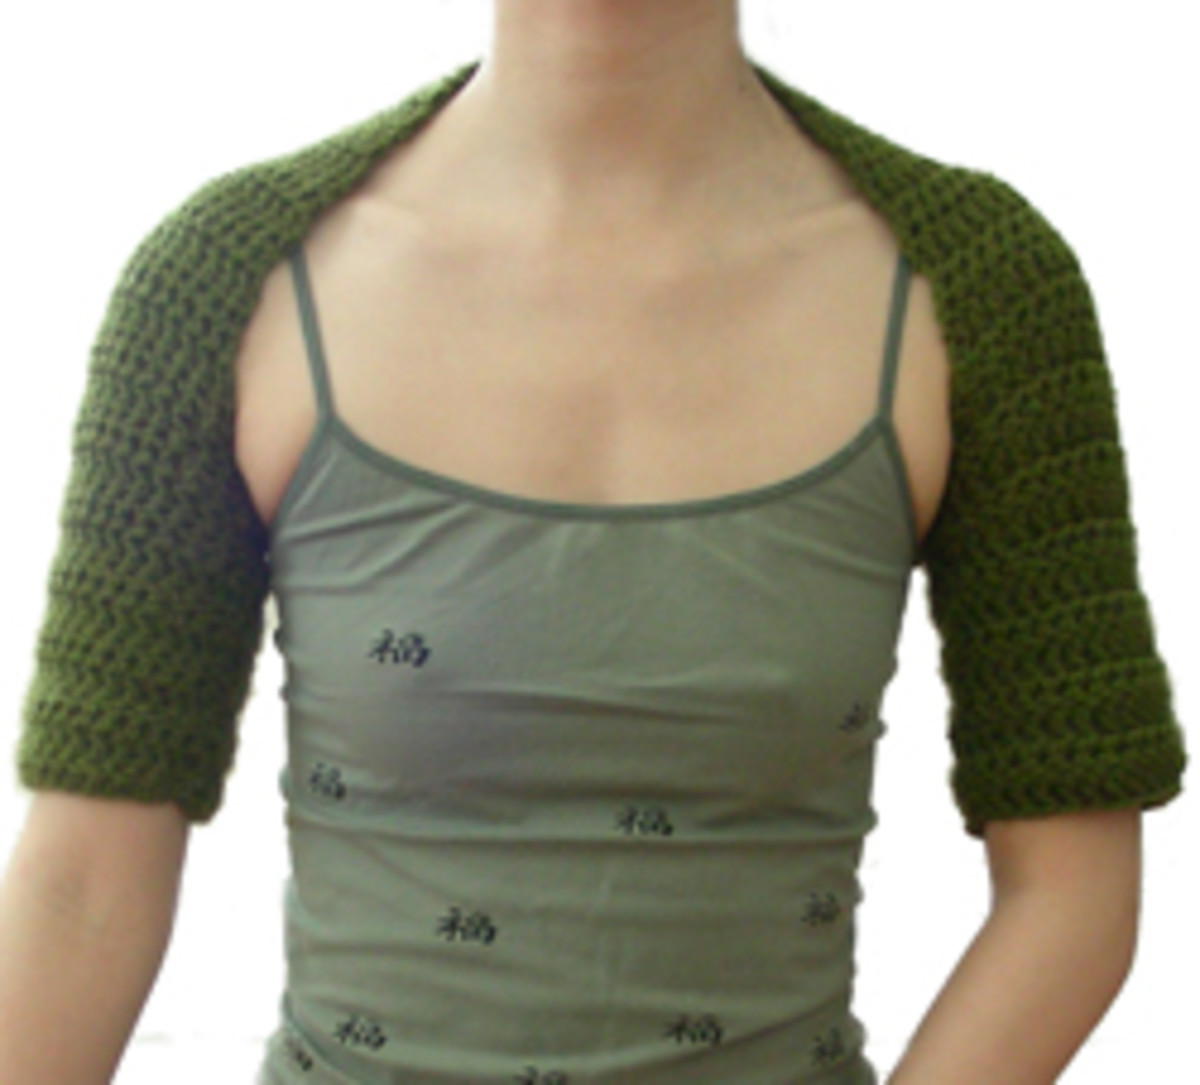 This crochet shrug is easy to make. The pattern is from Crochet Spot, follow the link at the end of this article.